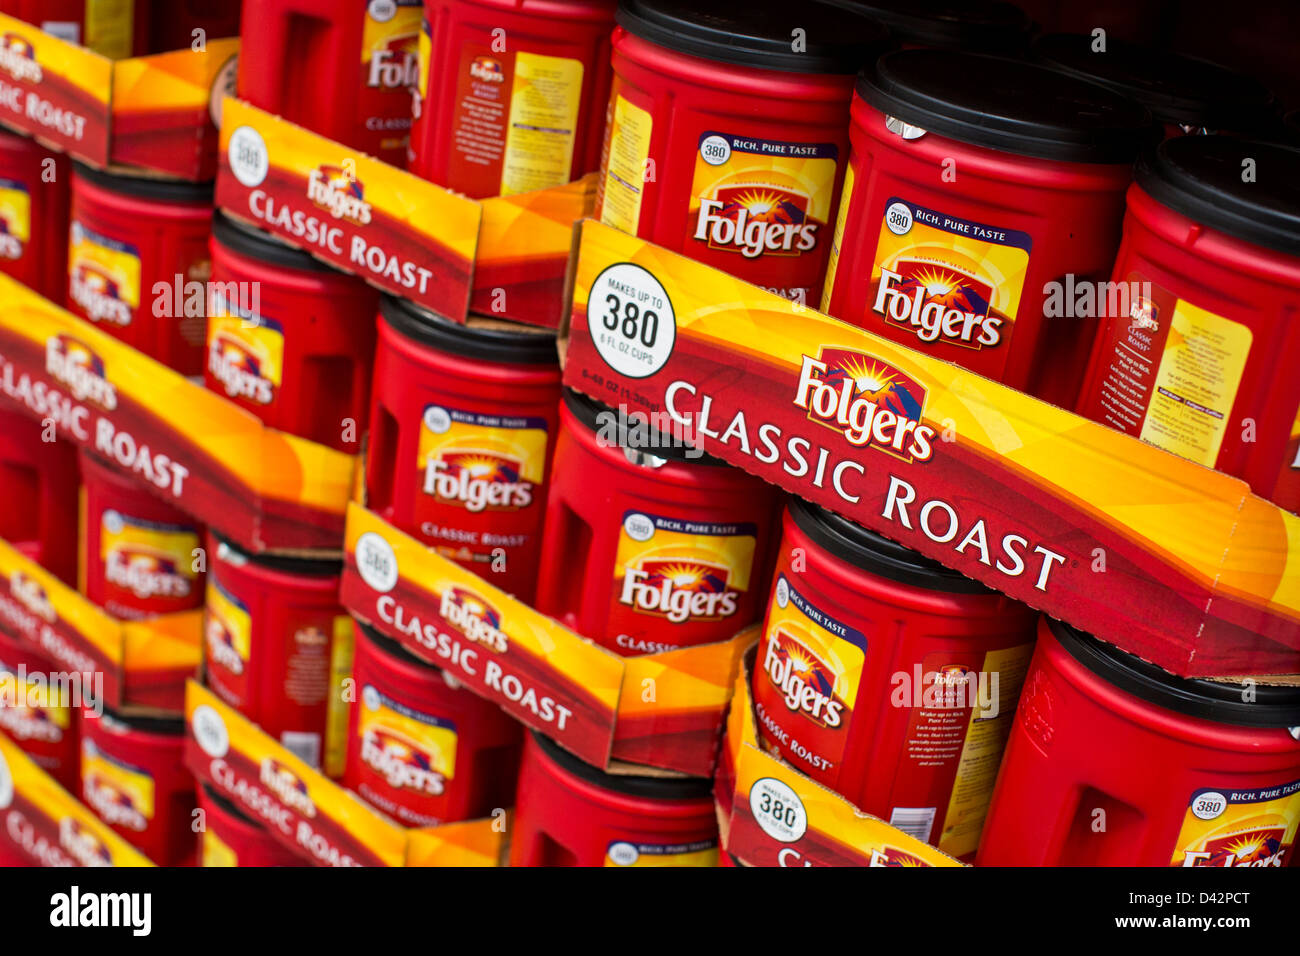 folgers coffee stock photos folgers coffee stock images alamy folgers coffee on display at a costco whole warehouse club stock image